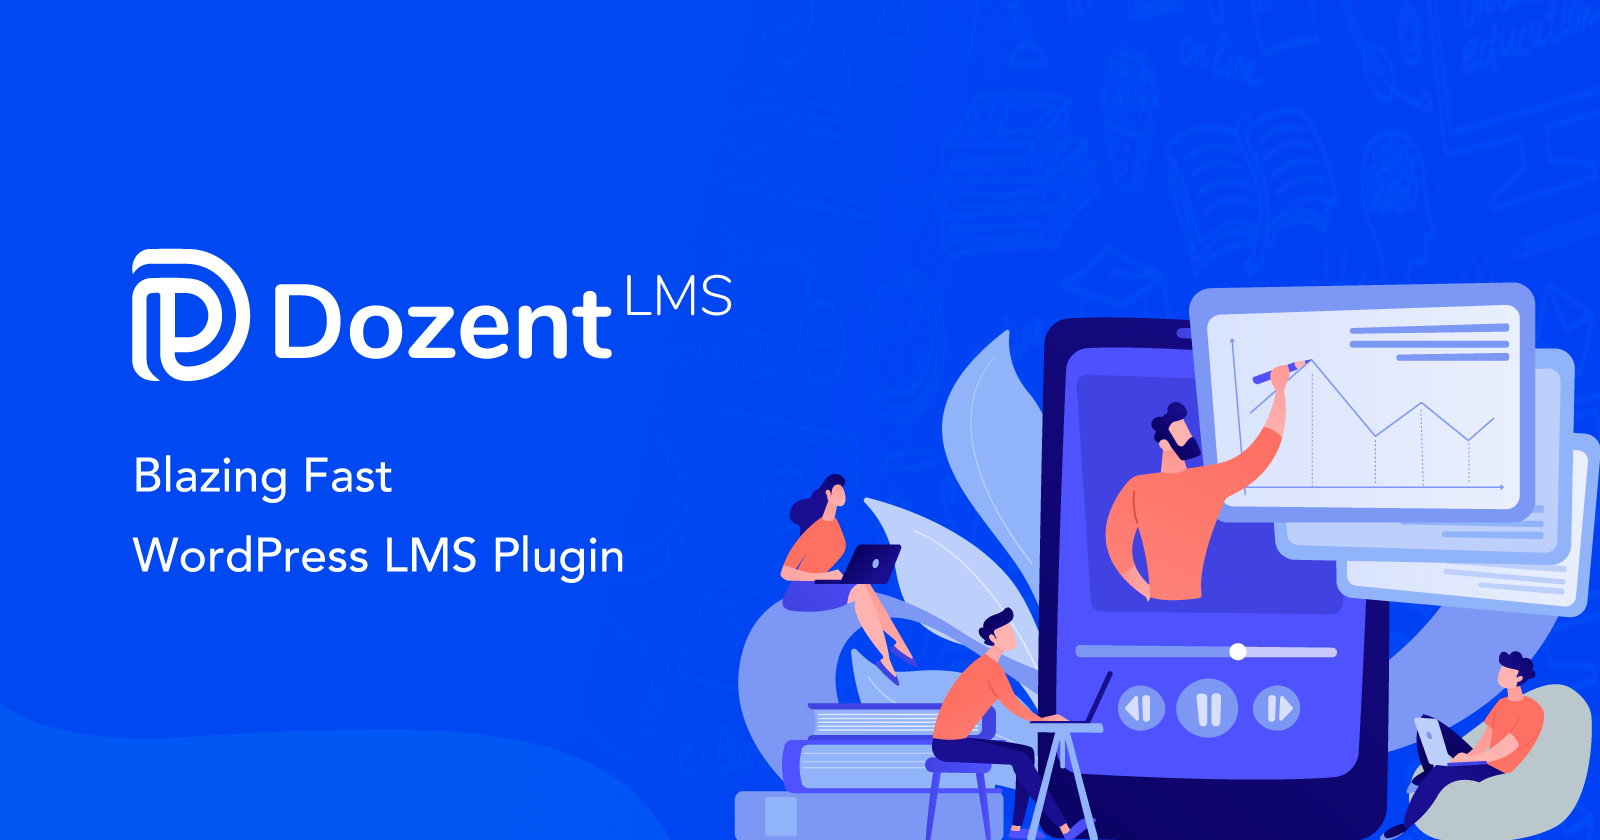 Dozent LMS - Wordpress LMS Plugin